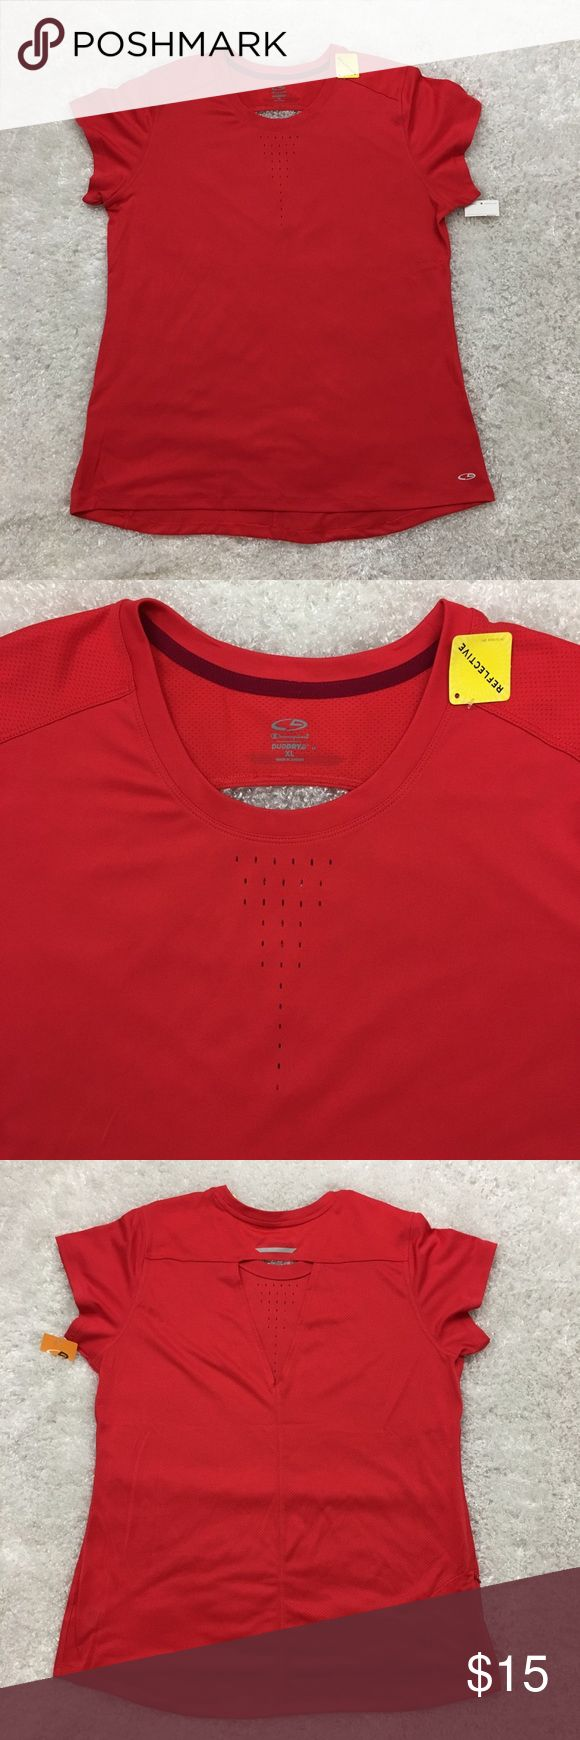 """NWT Champion Women's Duo dry Workout Shirt, XL NWT C9 Champion Women's Duo Dry workout shirt with laser cut in the front and cut-out in the back. Comes with a zipped pocket in the back secure an ID and keys. Color is reflective in red/orange mix.  Size XL Armpit to armpit laid flat 22"""" Length 28"""" Approximate only.  New with tag.  No stains or holes.  Stored in a smoke and pet free household.  Please see all pictures in details or ask any questions to avoid return.  Check out my store for…"""